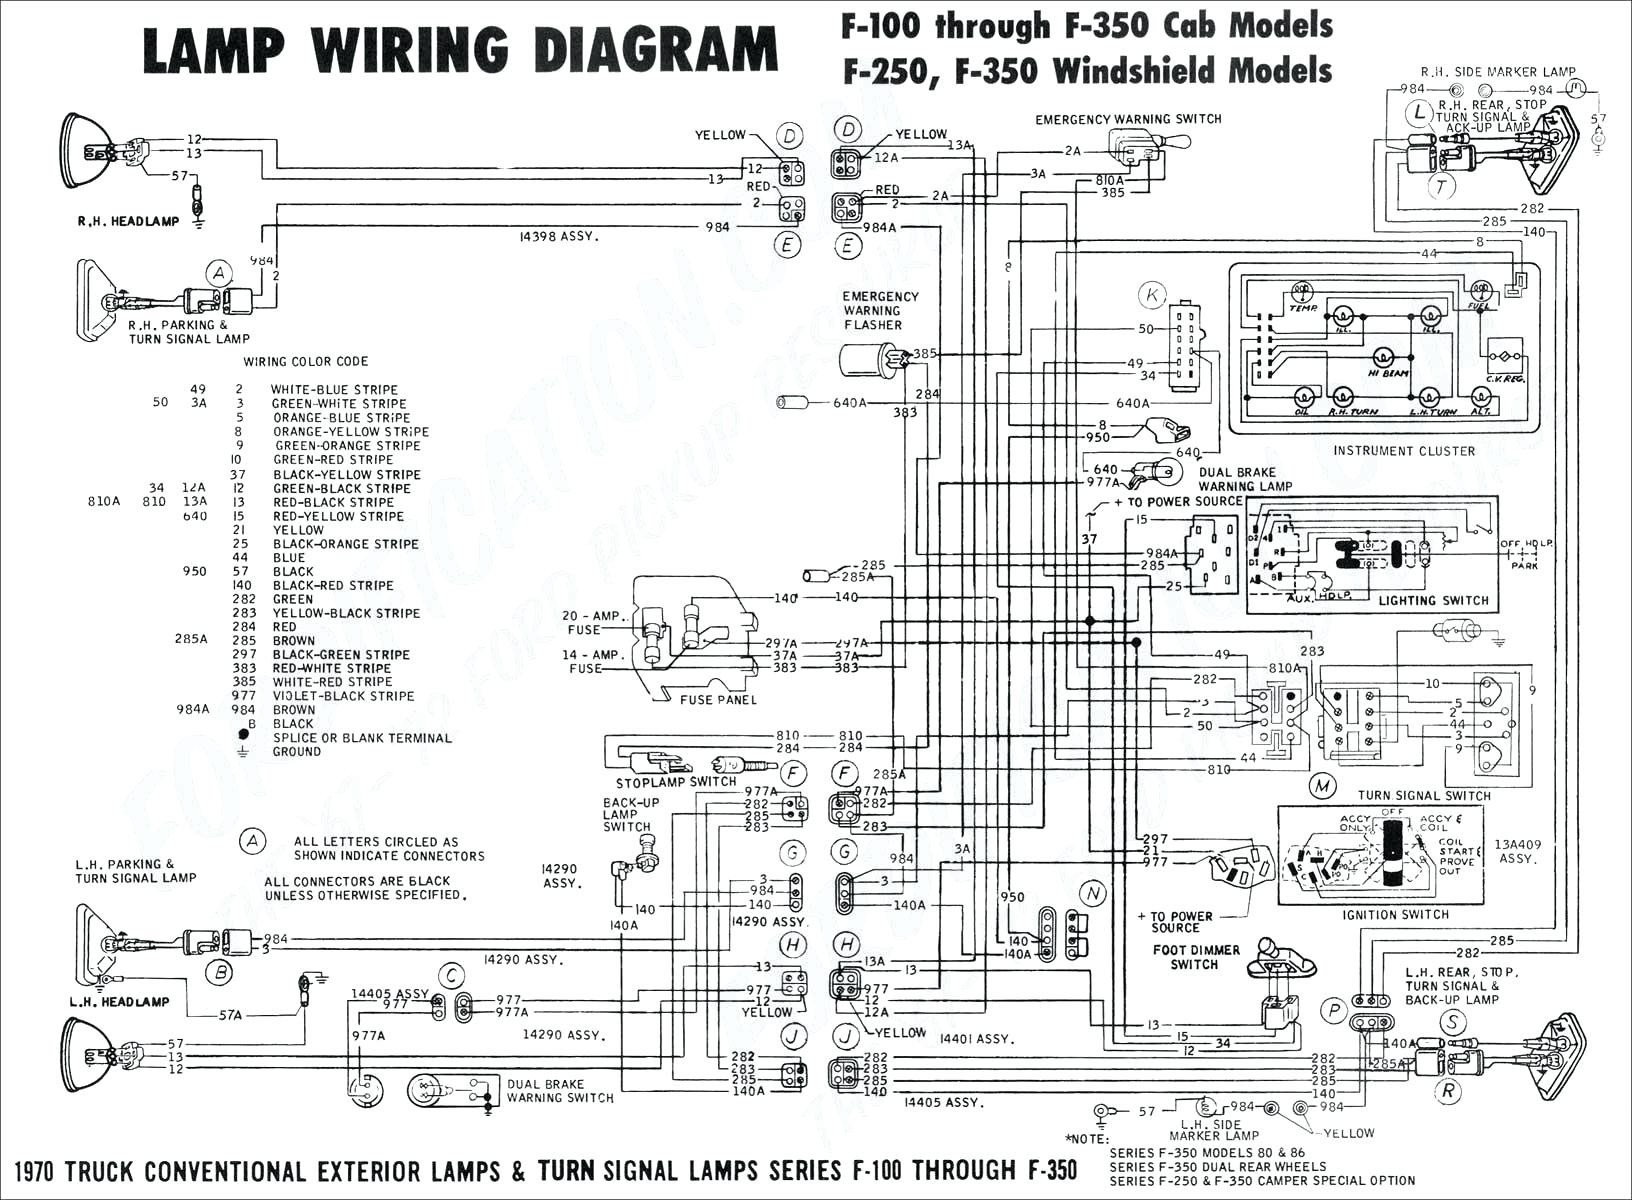 quartz tube heater wiring diagram 240v best wiring library Electric Baseboard Heater Wiring Diagram quartz tube heater wiring diagram 240v infratech heater wiring diagram sample